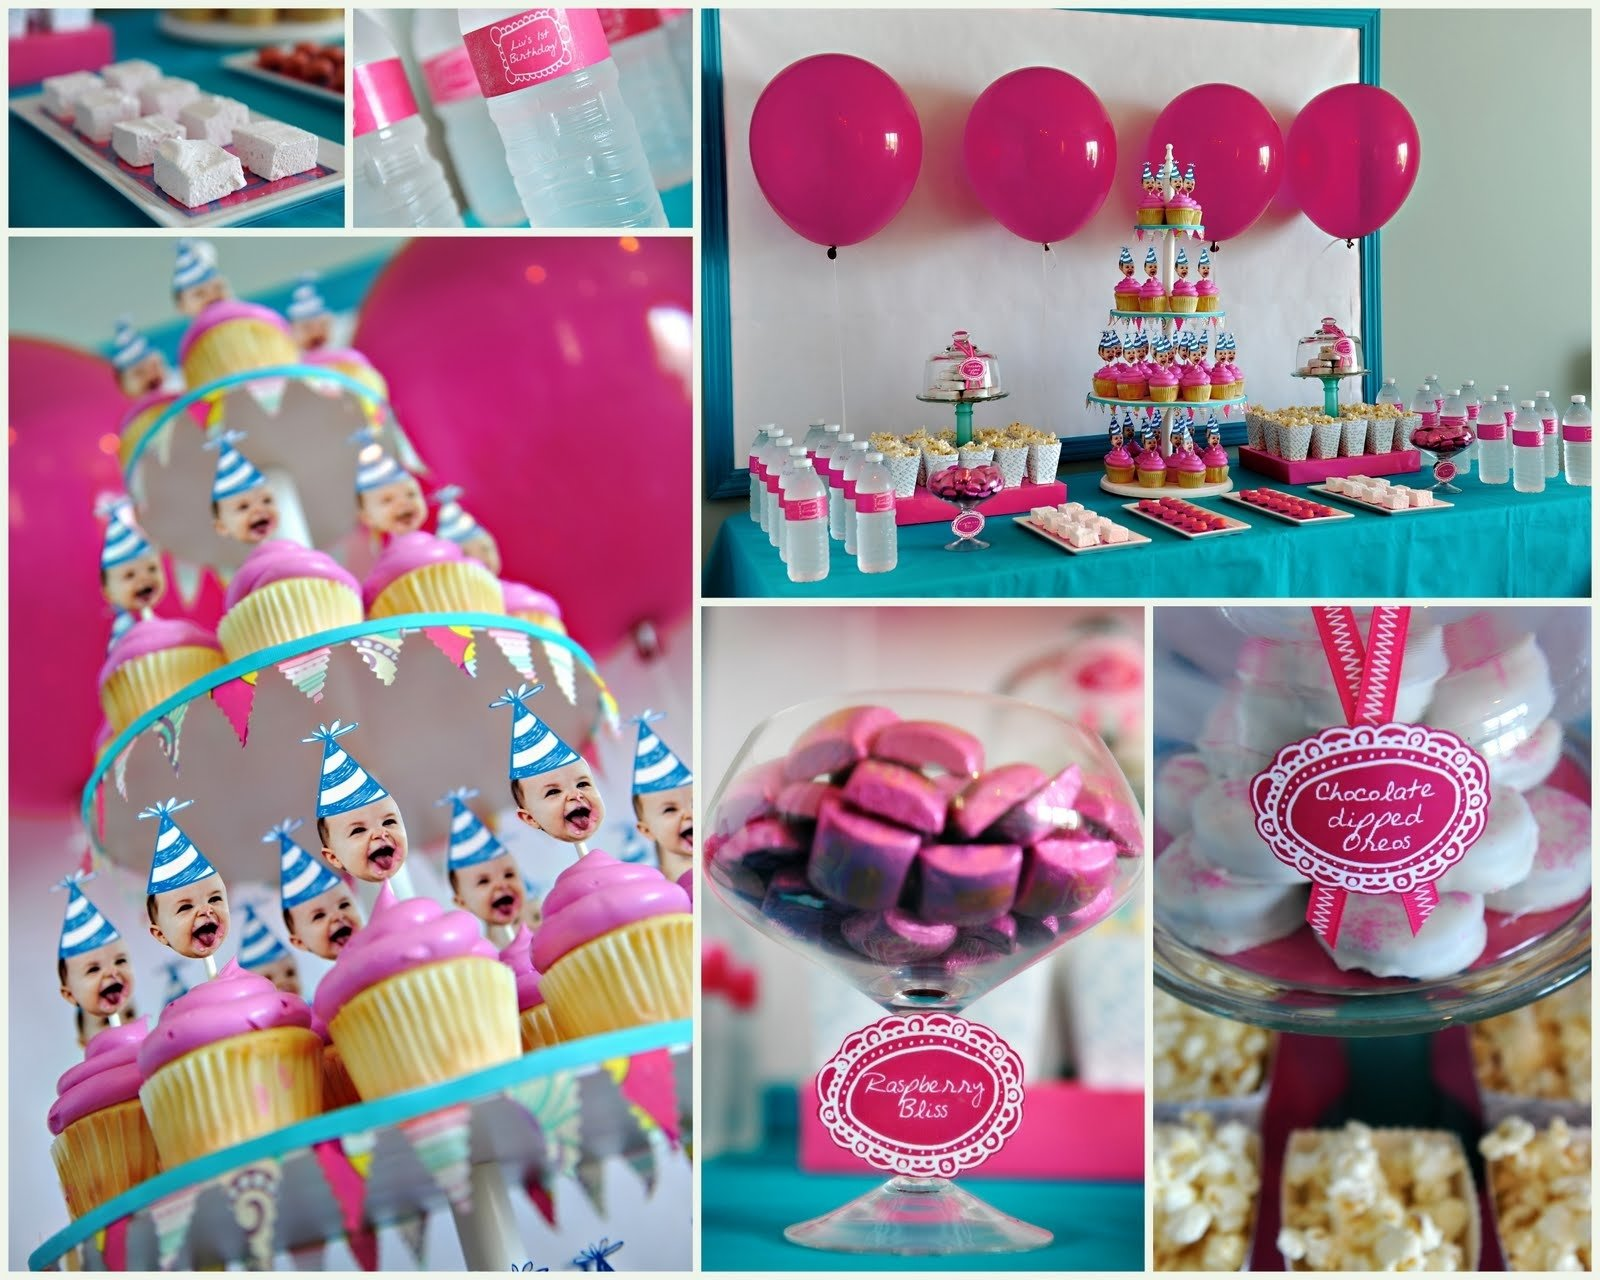 10 Best 10 Year Old Party Ideas themes birthday 4 year old birthday party ideas themes birthdays 1 2021